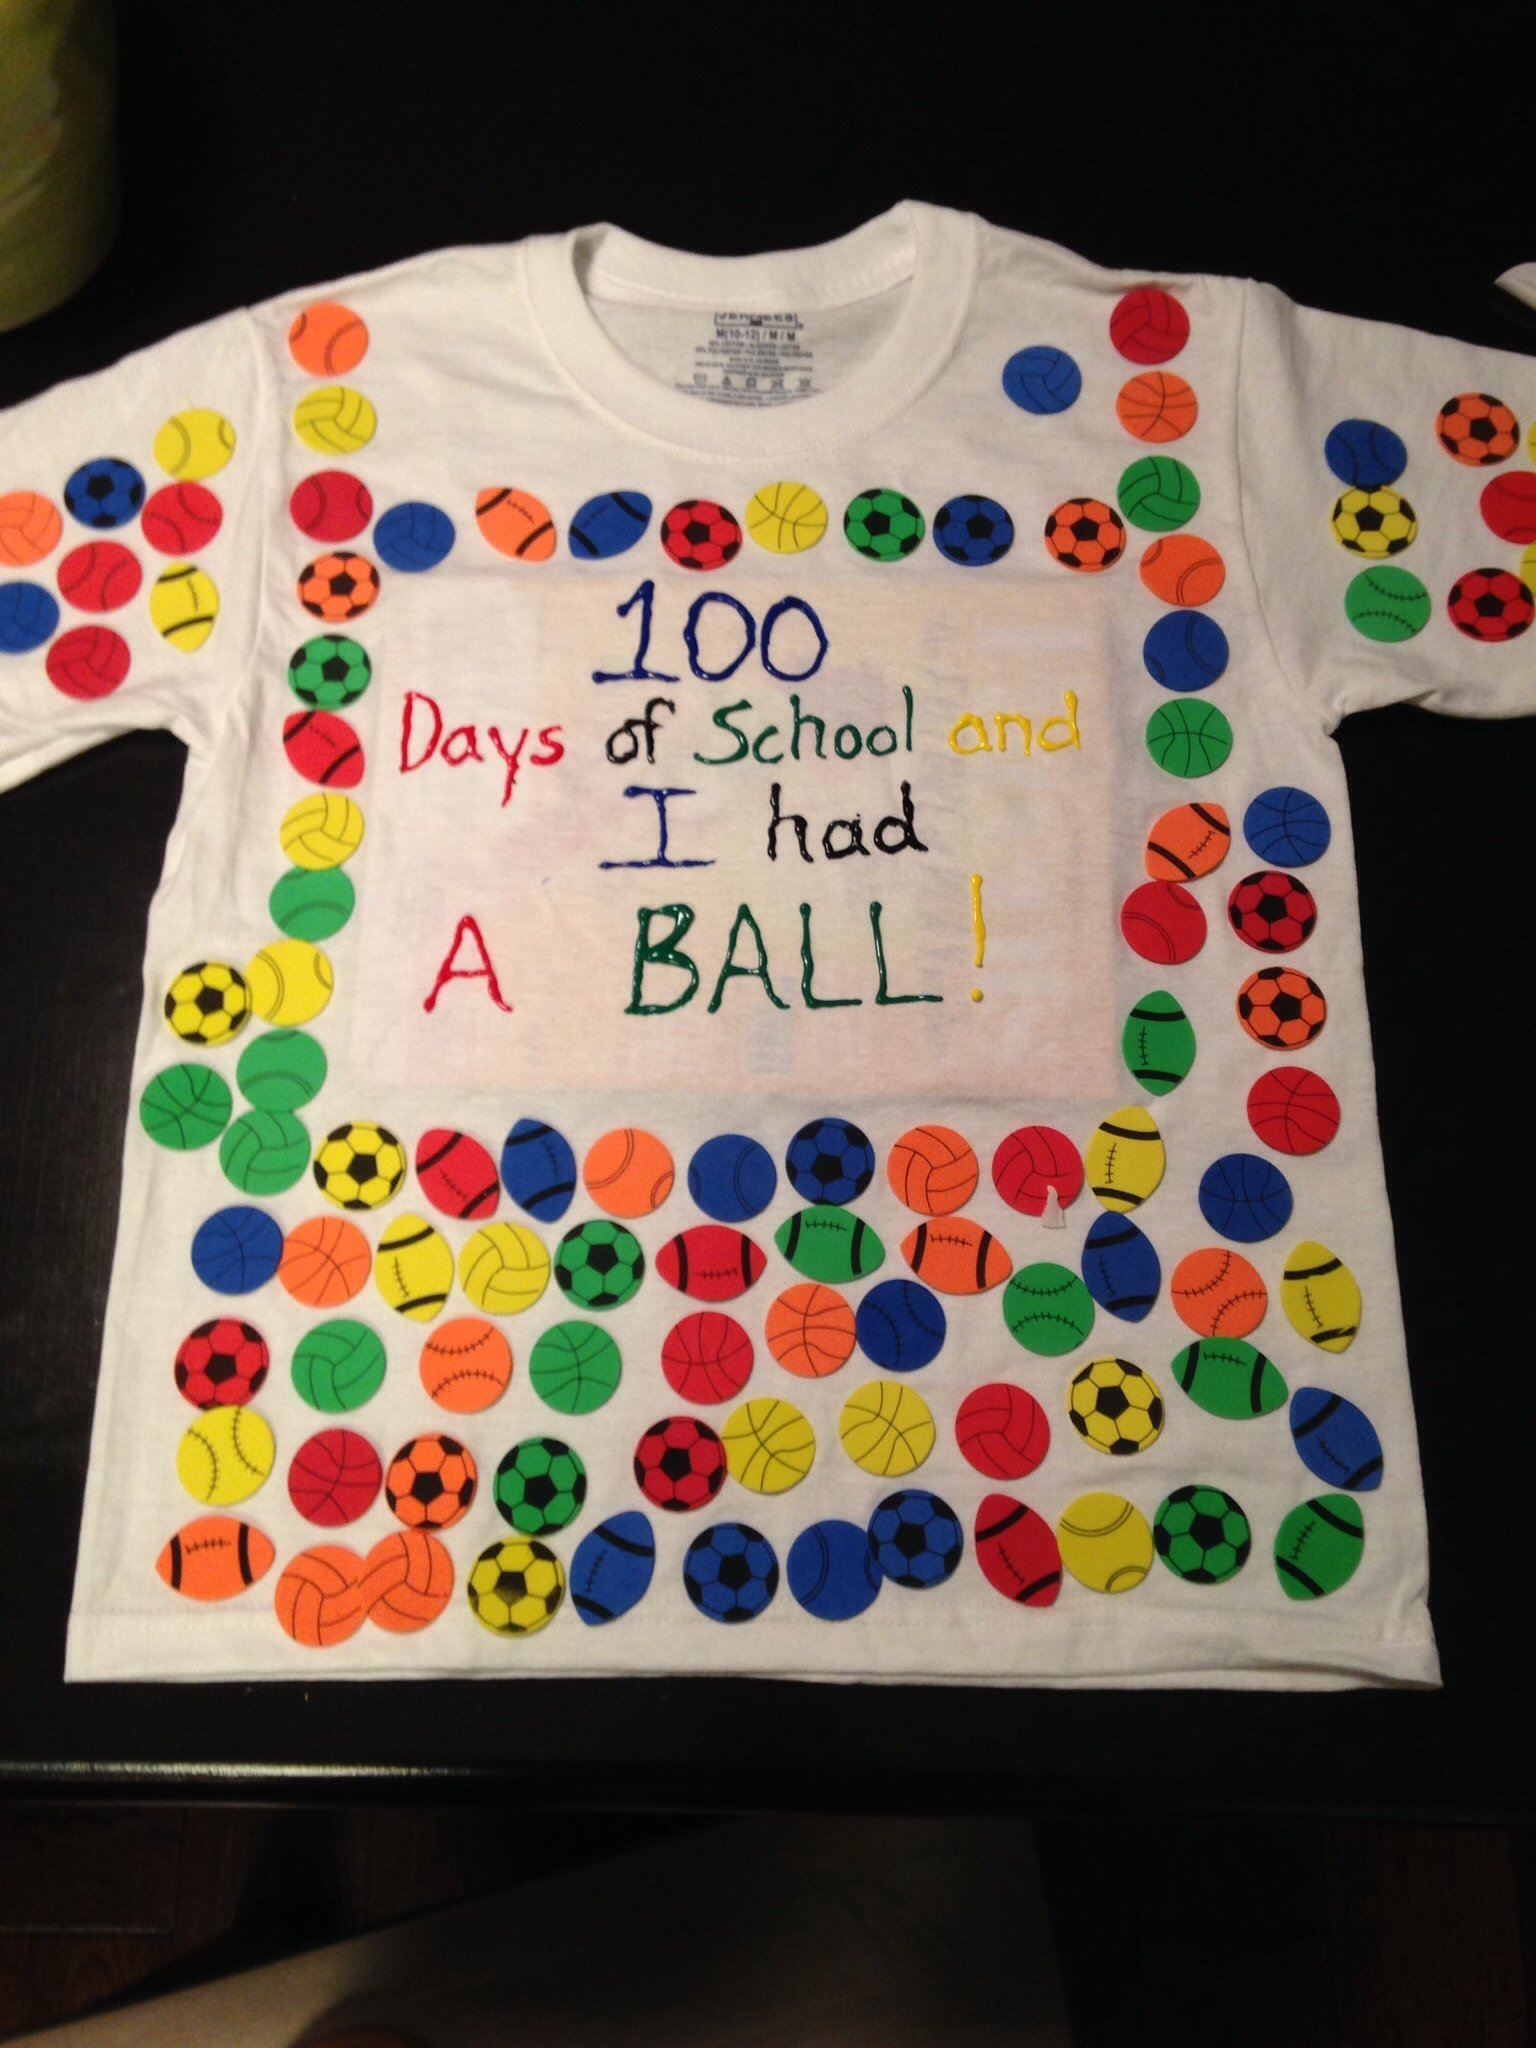 10 Fantastic 100 Days Of School Ideas 100 day of school t shirt foam stickers school stuff pinterest 9 2020